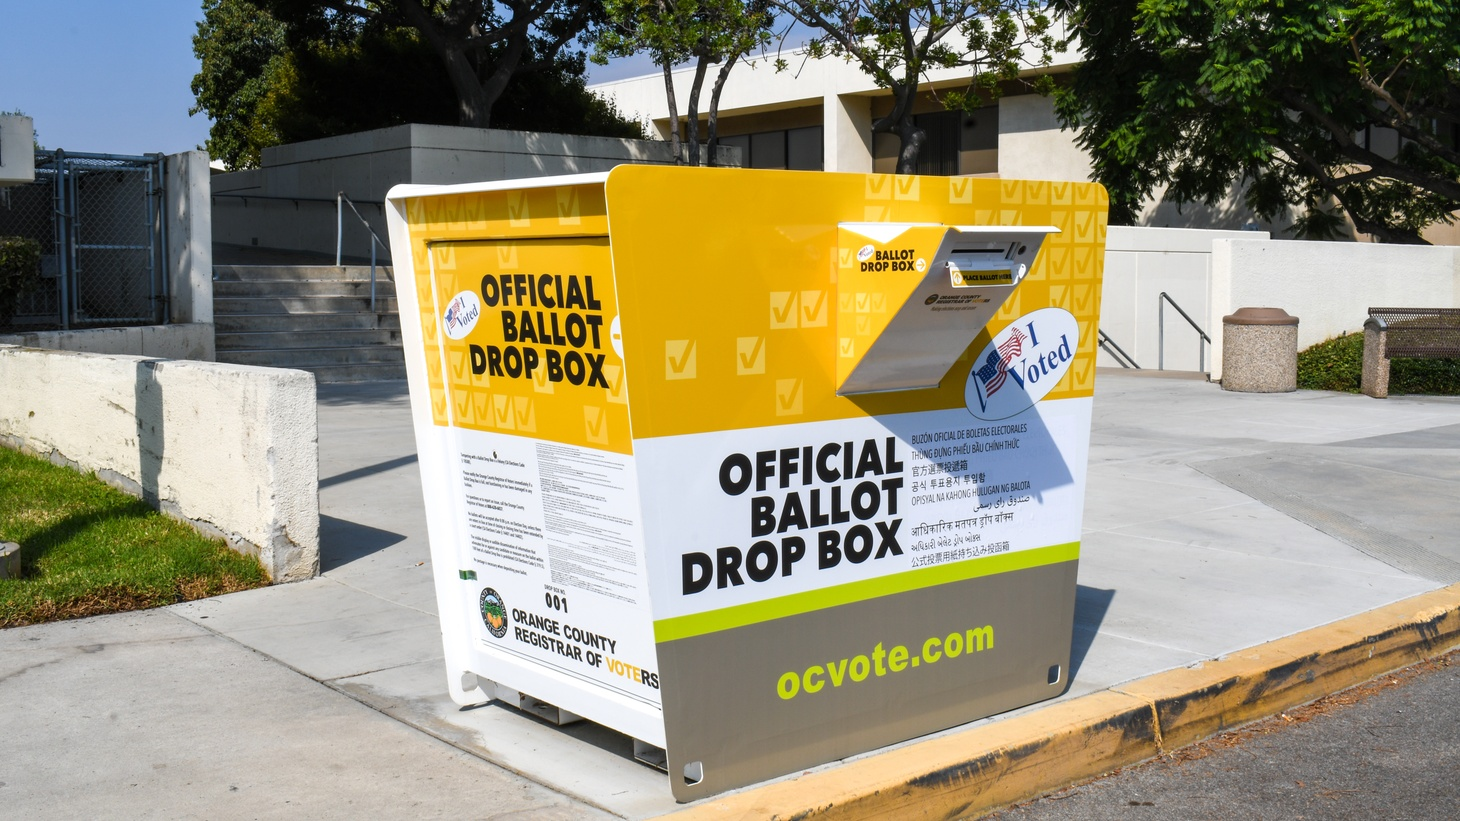 A ballot drop box at the Orange County Registrar of Voters in Santa Ana. October 5, 2020.